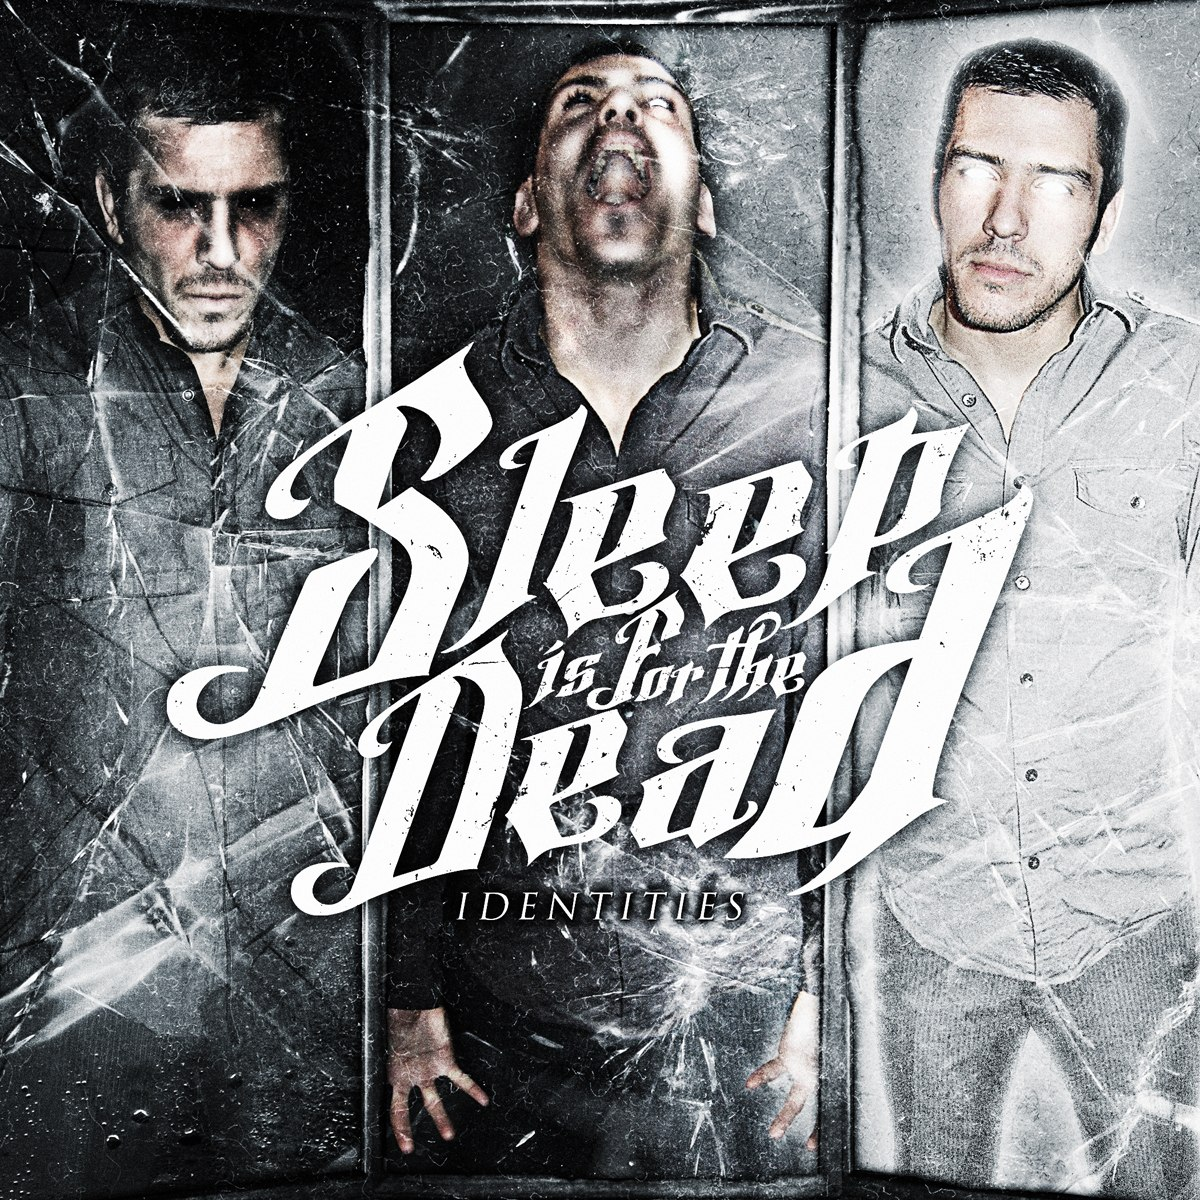 Sleep is for the Dead - Identities (2012)